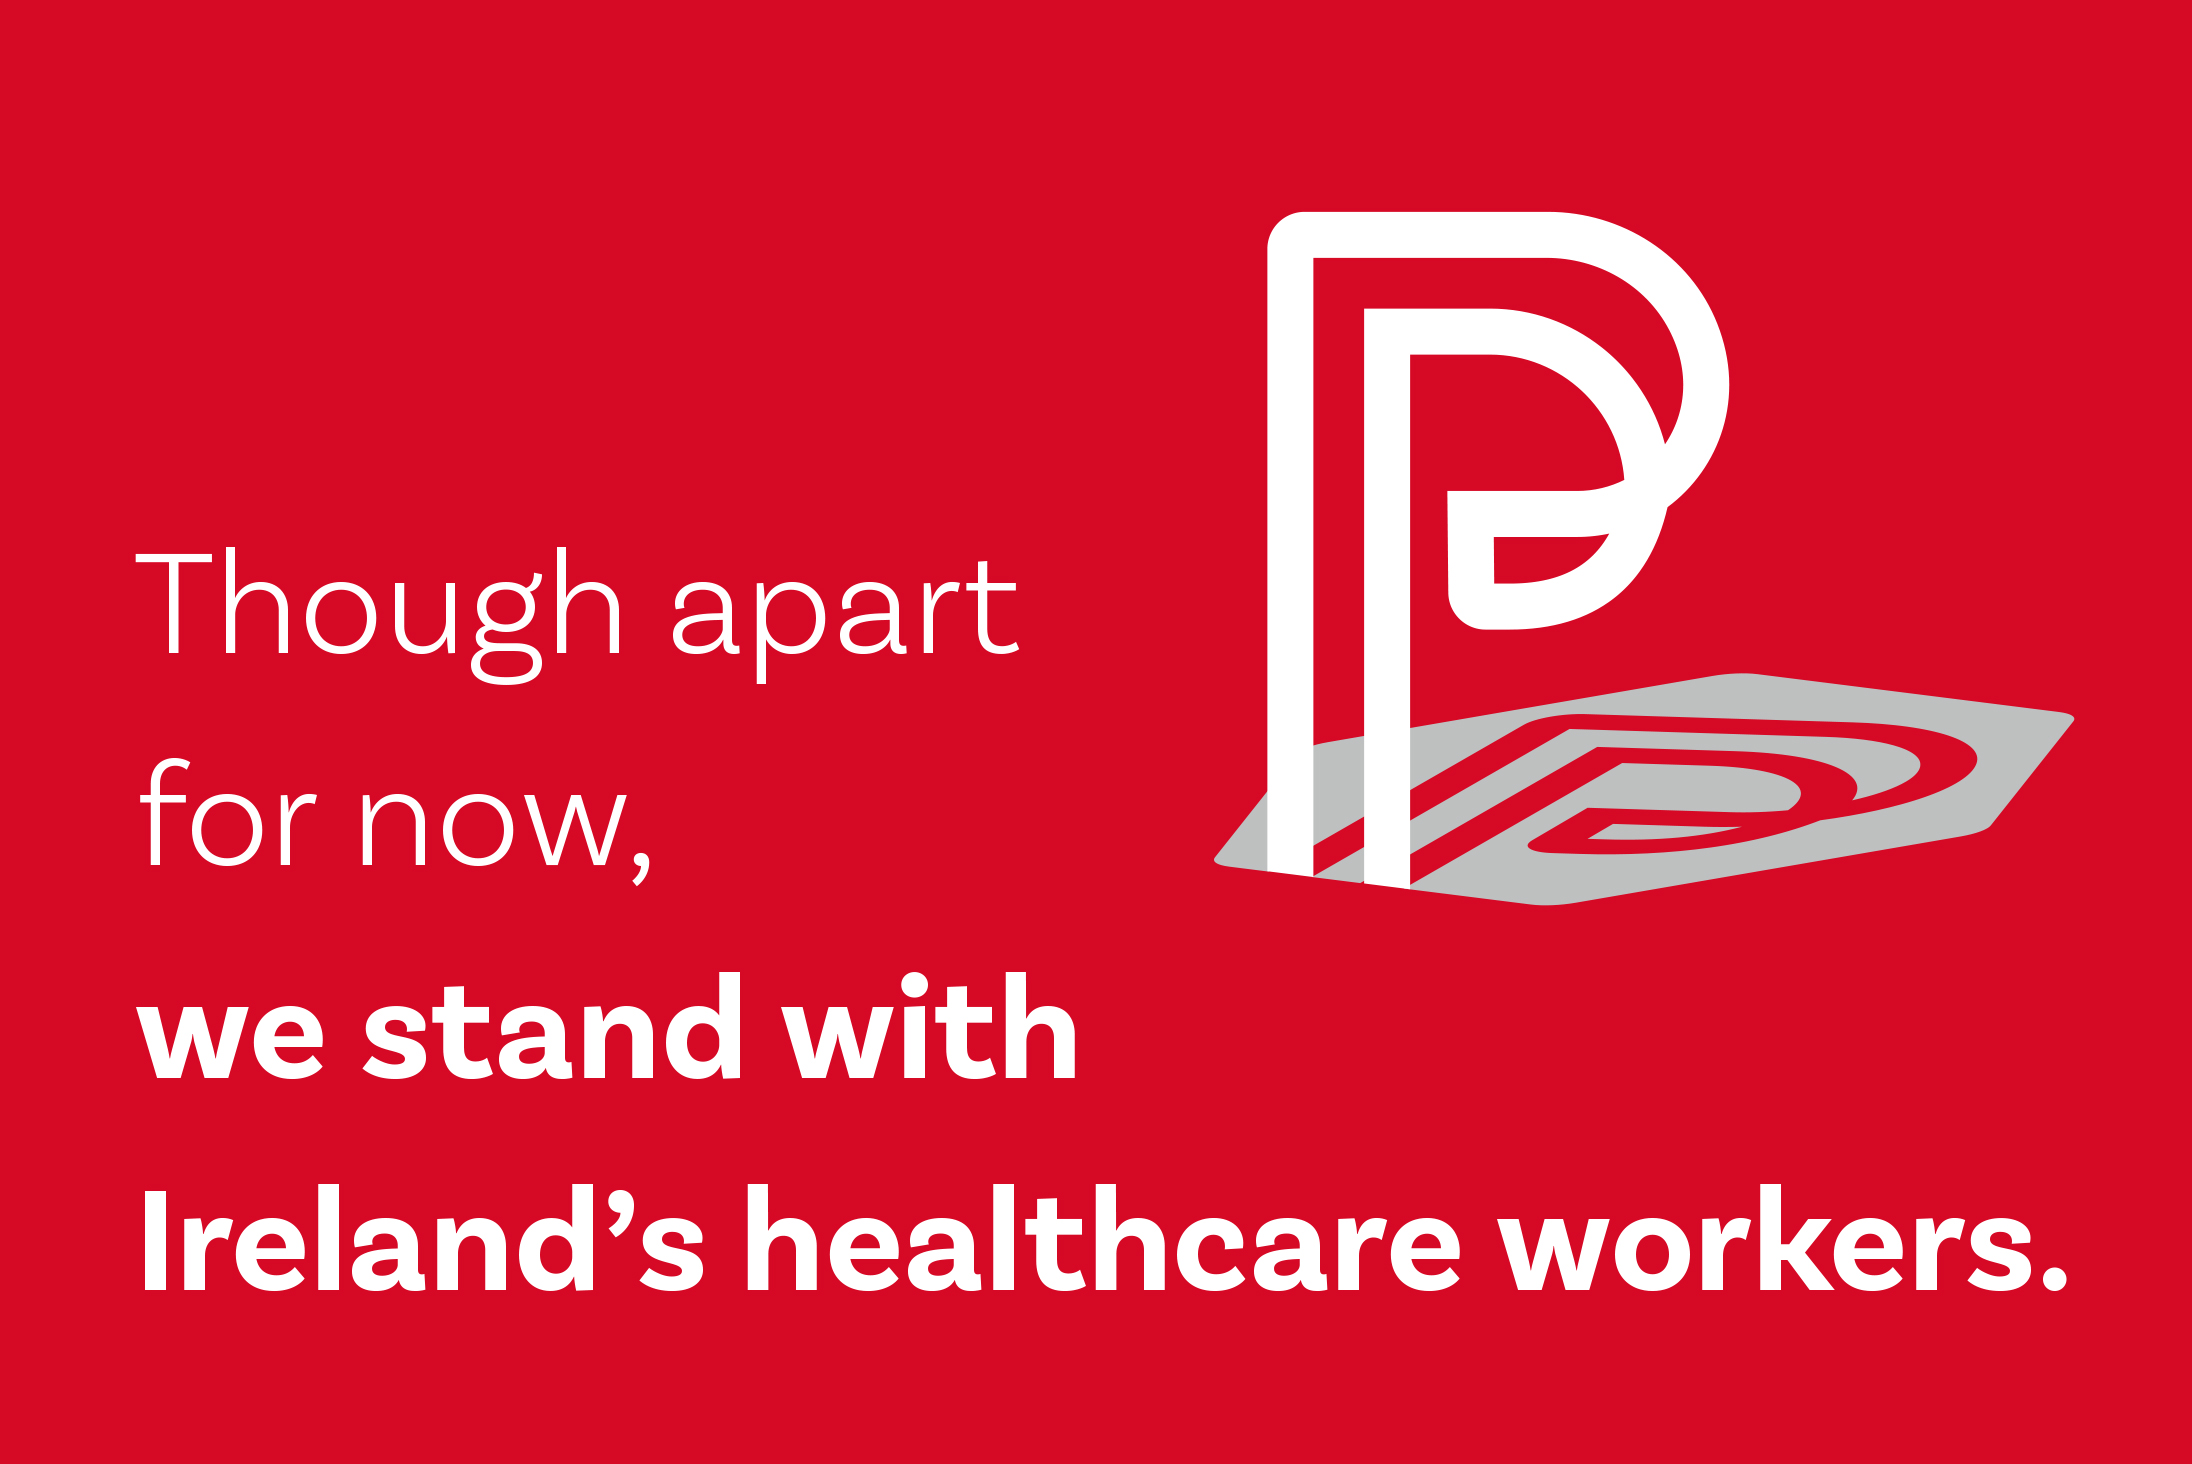 We Stand with Ireland's Healthcare Workers